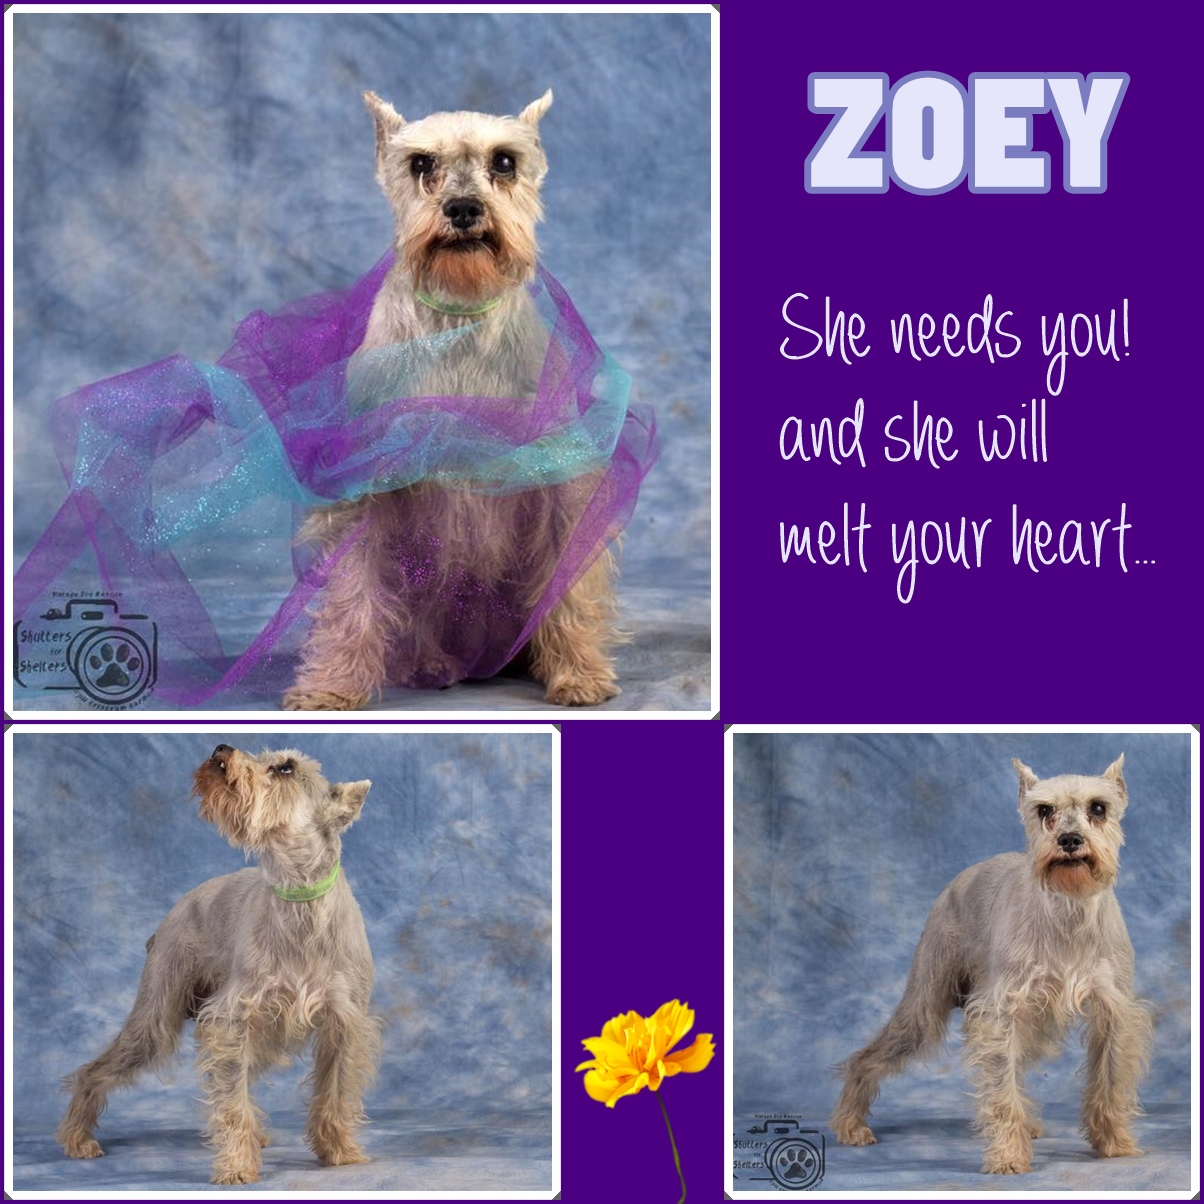 Adopt Zoey: an affectionate, active little girl